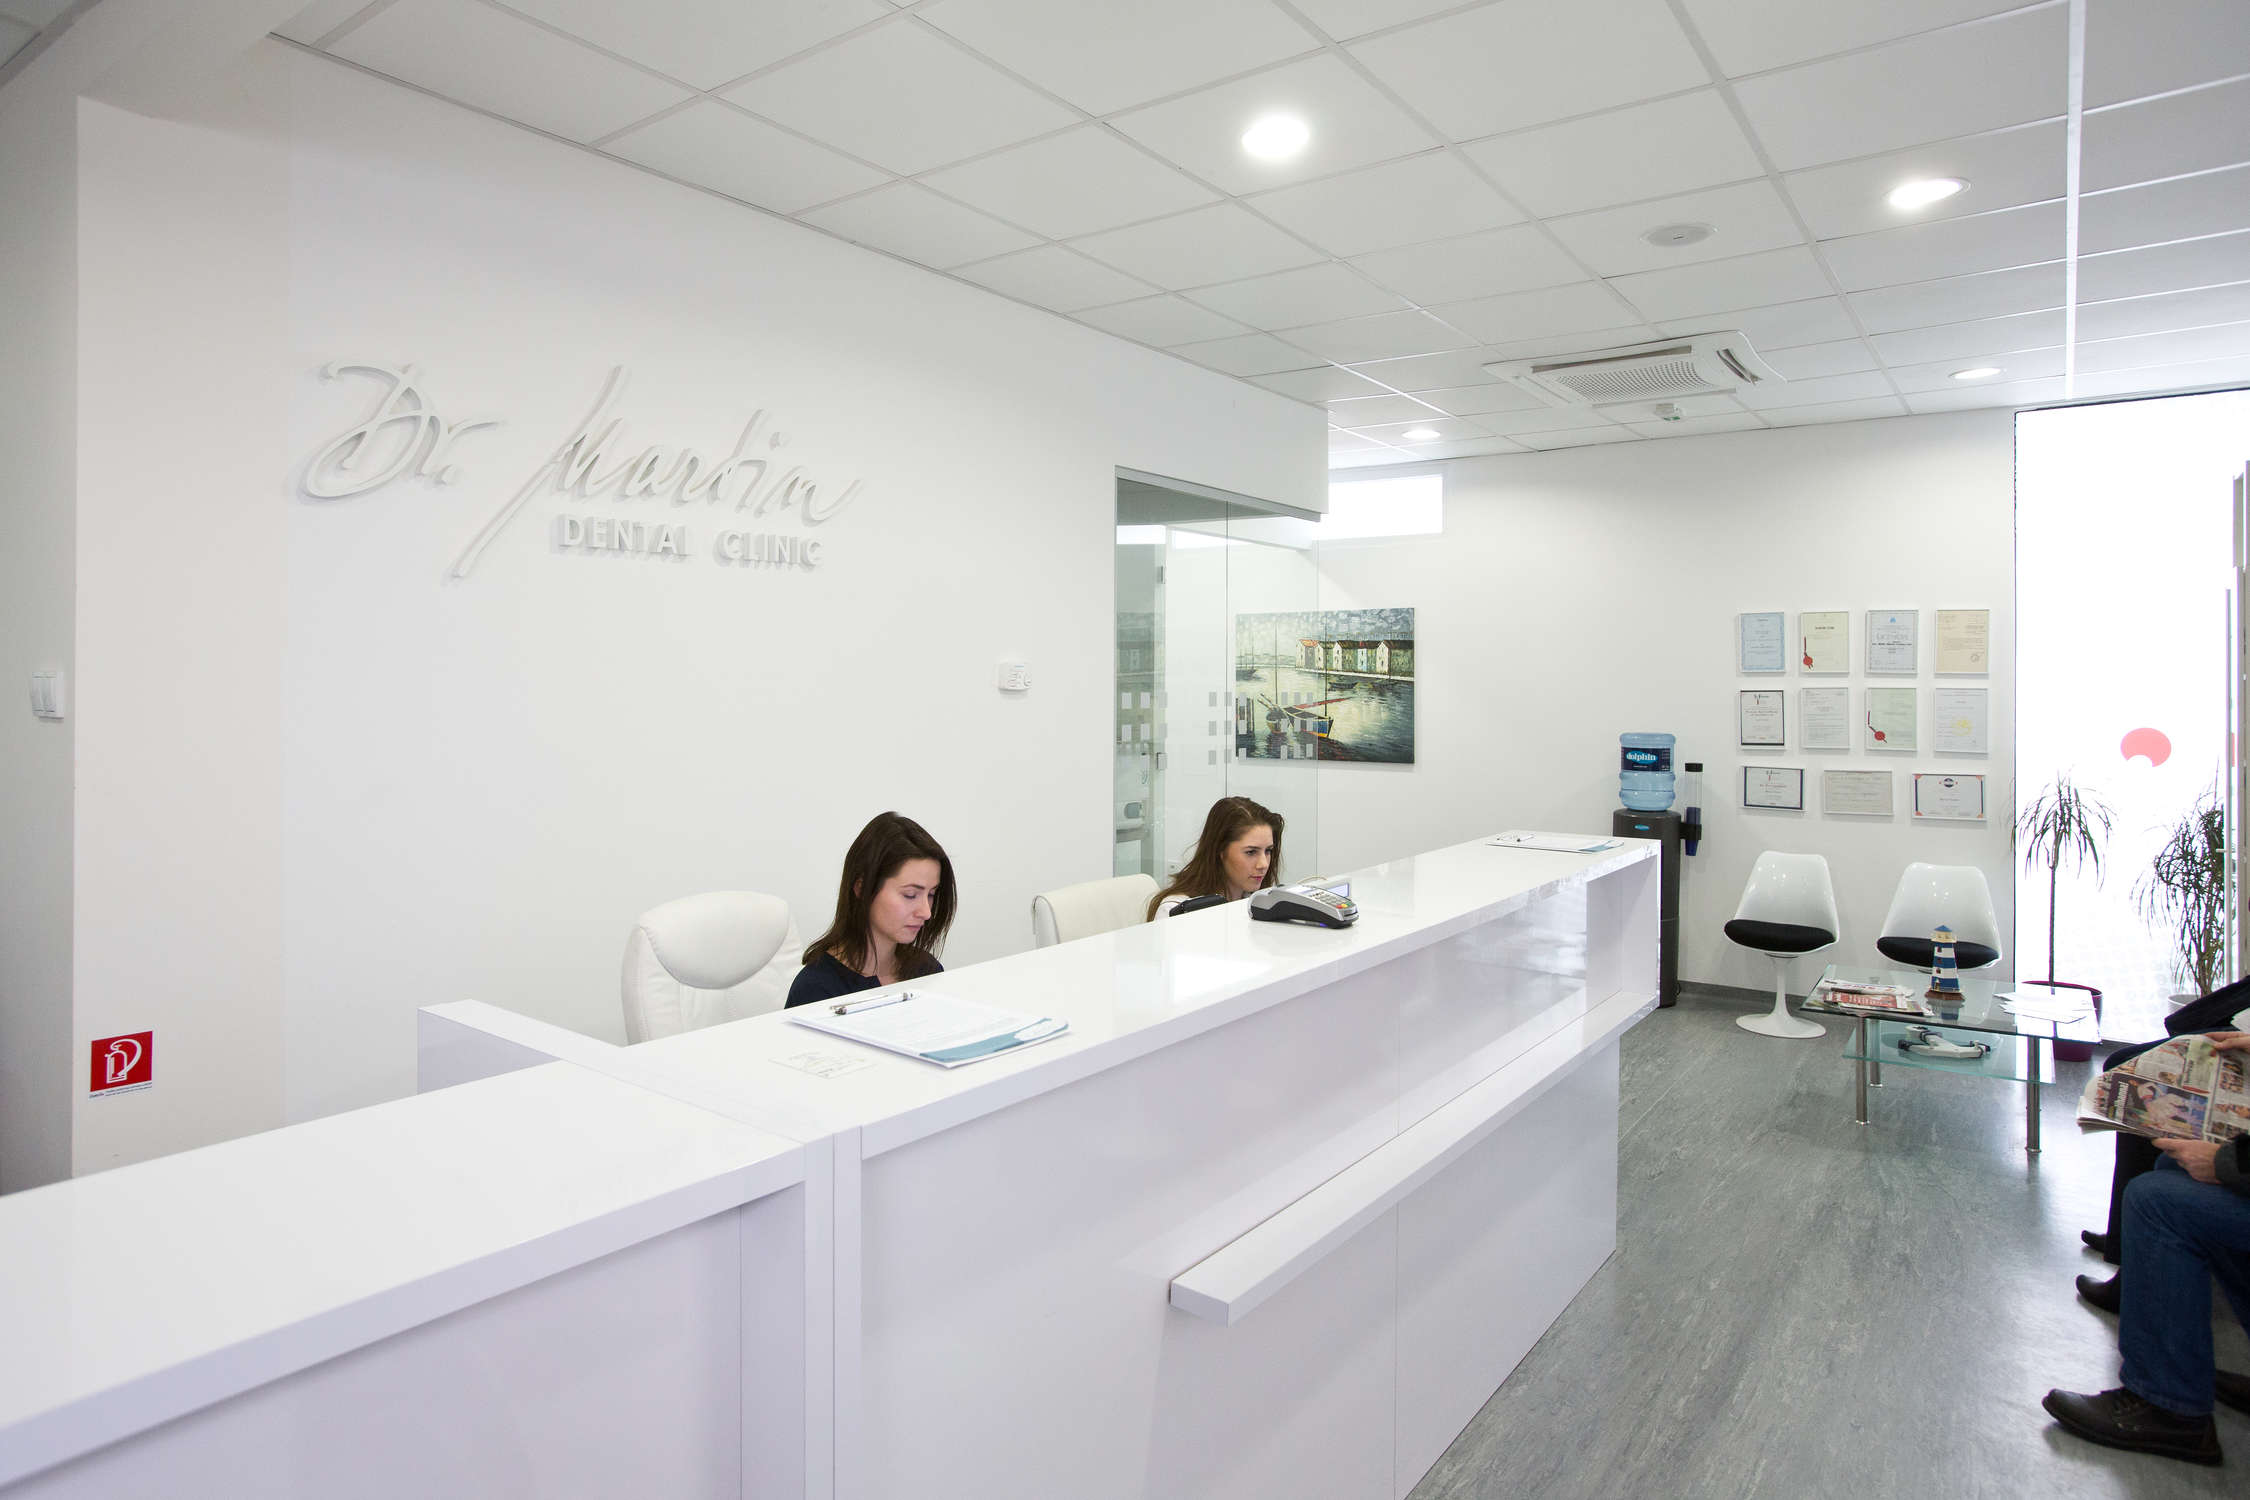 Dr. Martin Dental Clinic